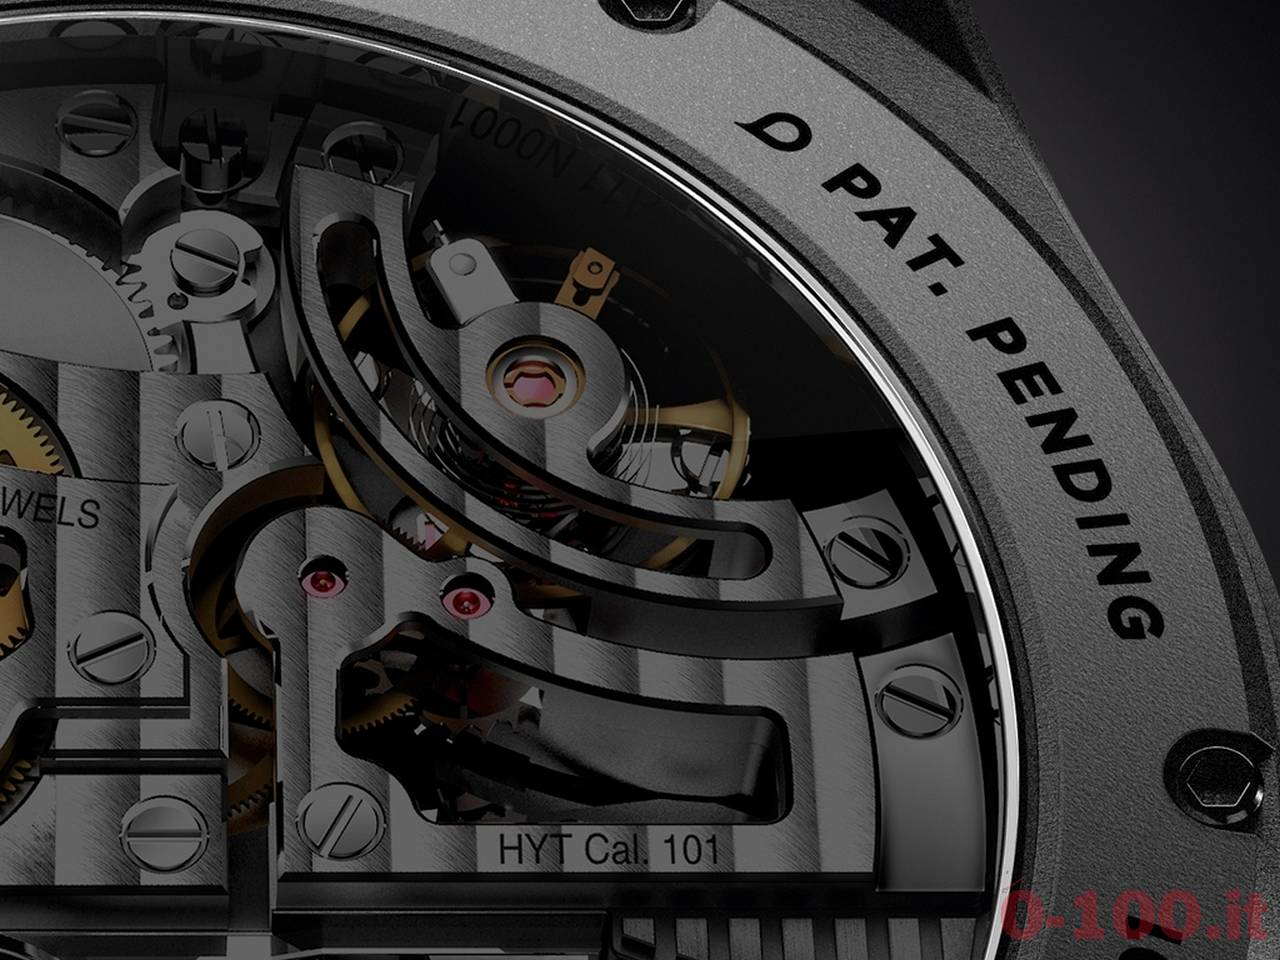 baselworld-2016-hyt-skull-bad-boy-prezzo-price_0-1005